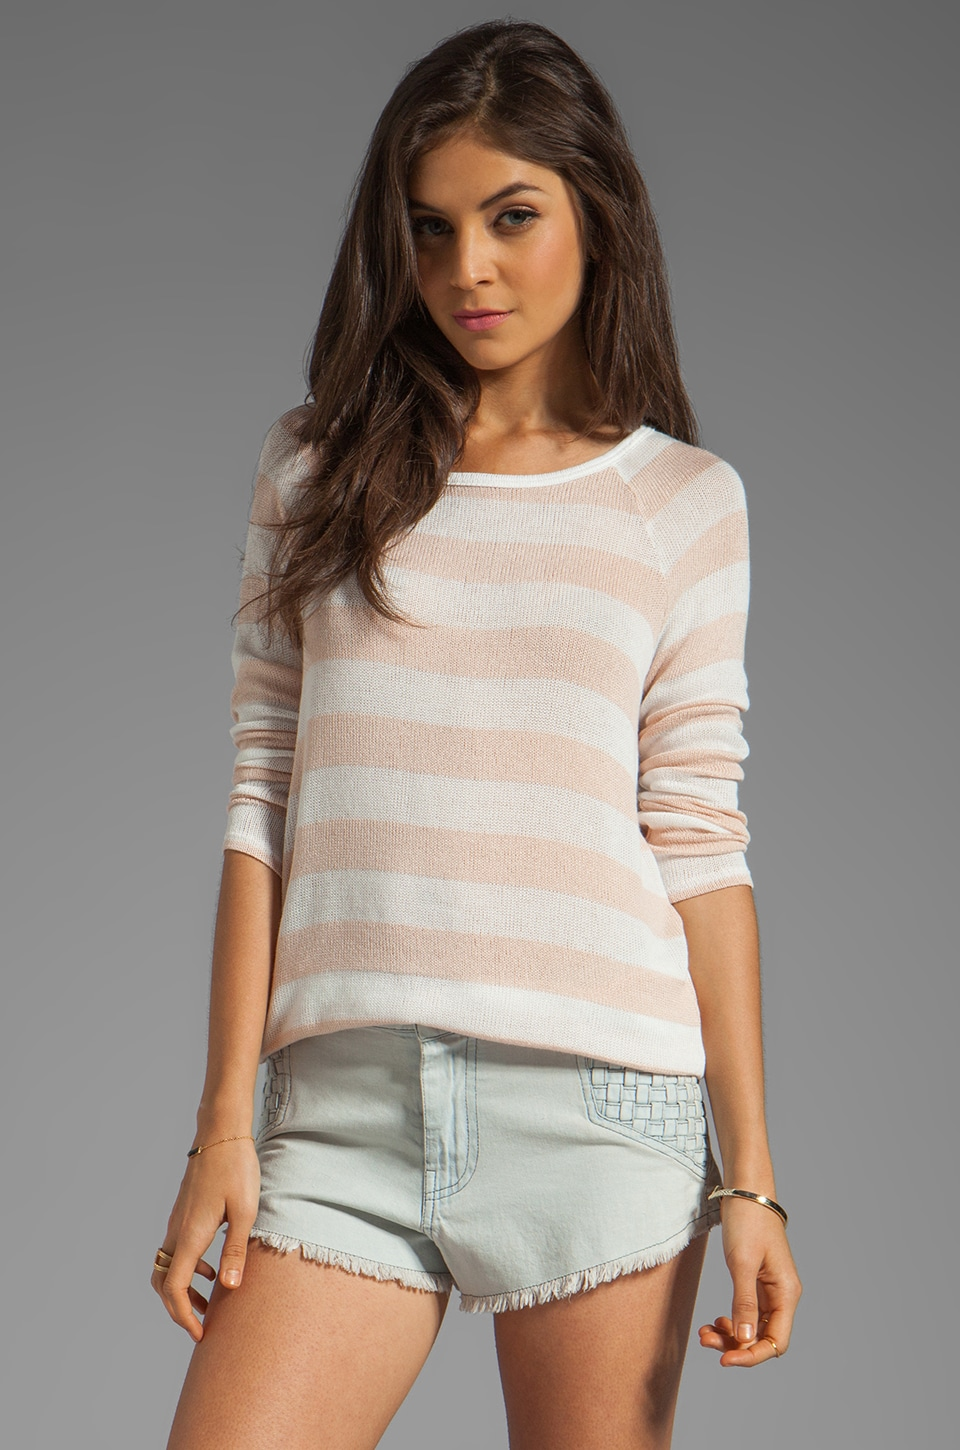 Soft Joie Dayla Stripe Top in Nude/Porcelain